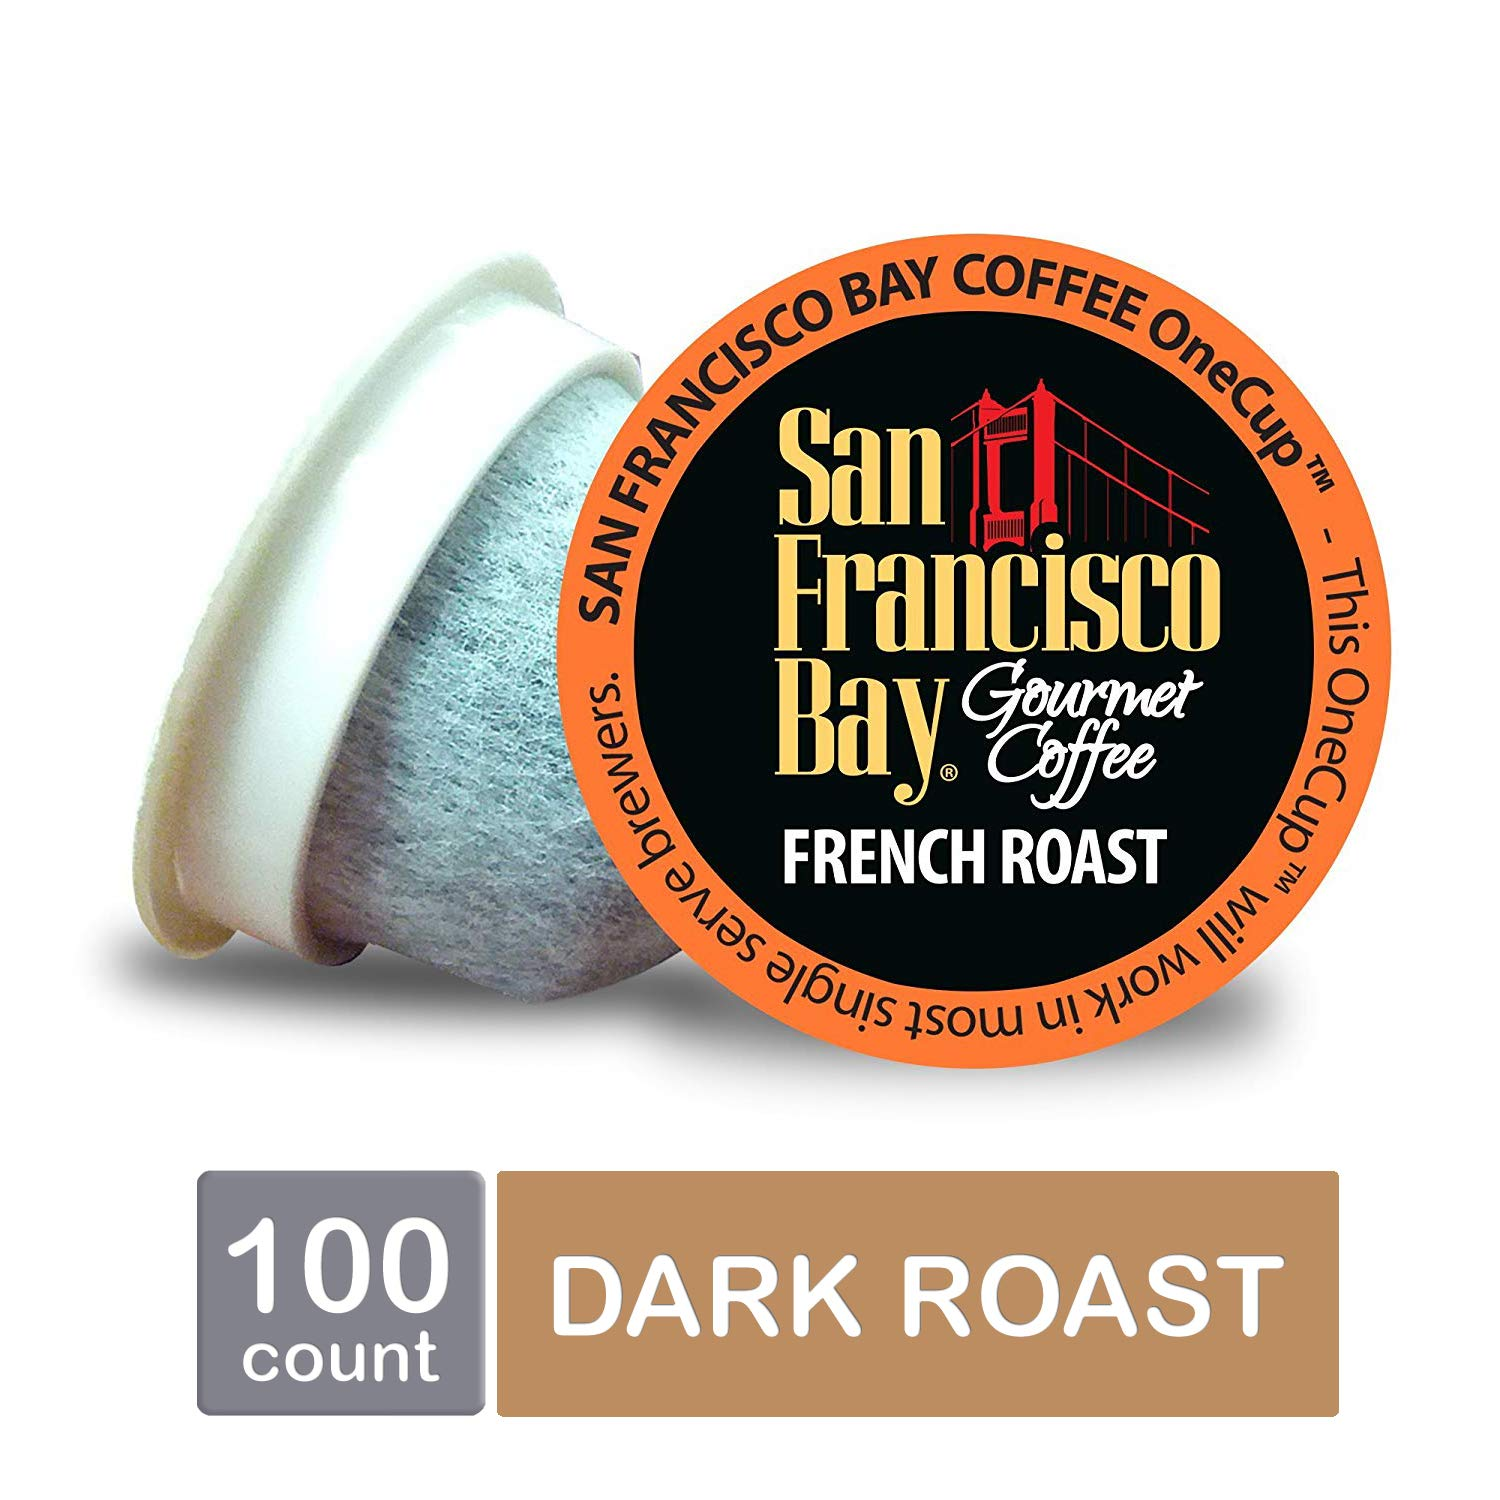 San Francisco Bay OneCup French Roast, Single Serve Coffee K-Cup Pods (100 Count) Keurig Compatible